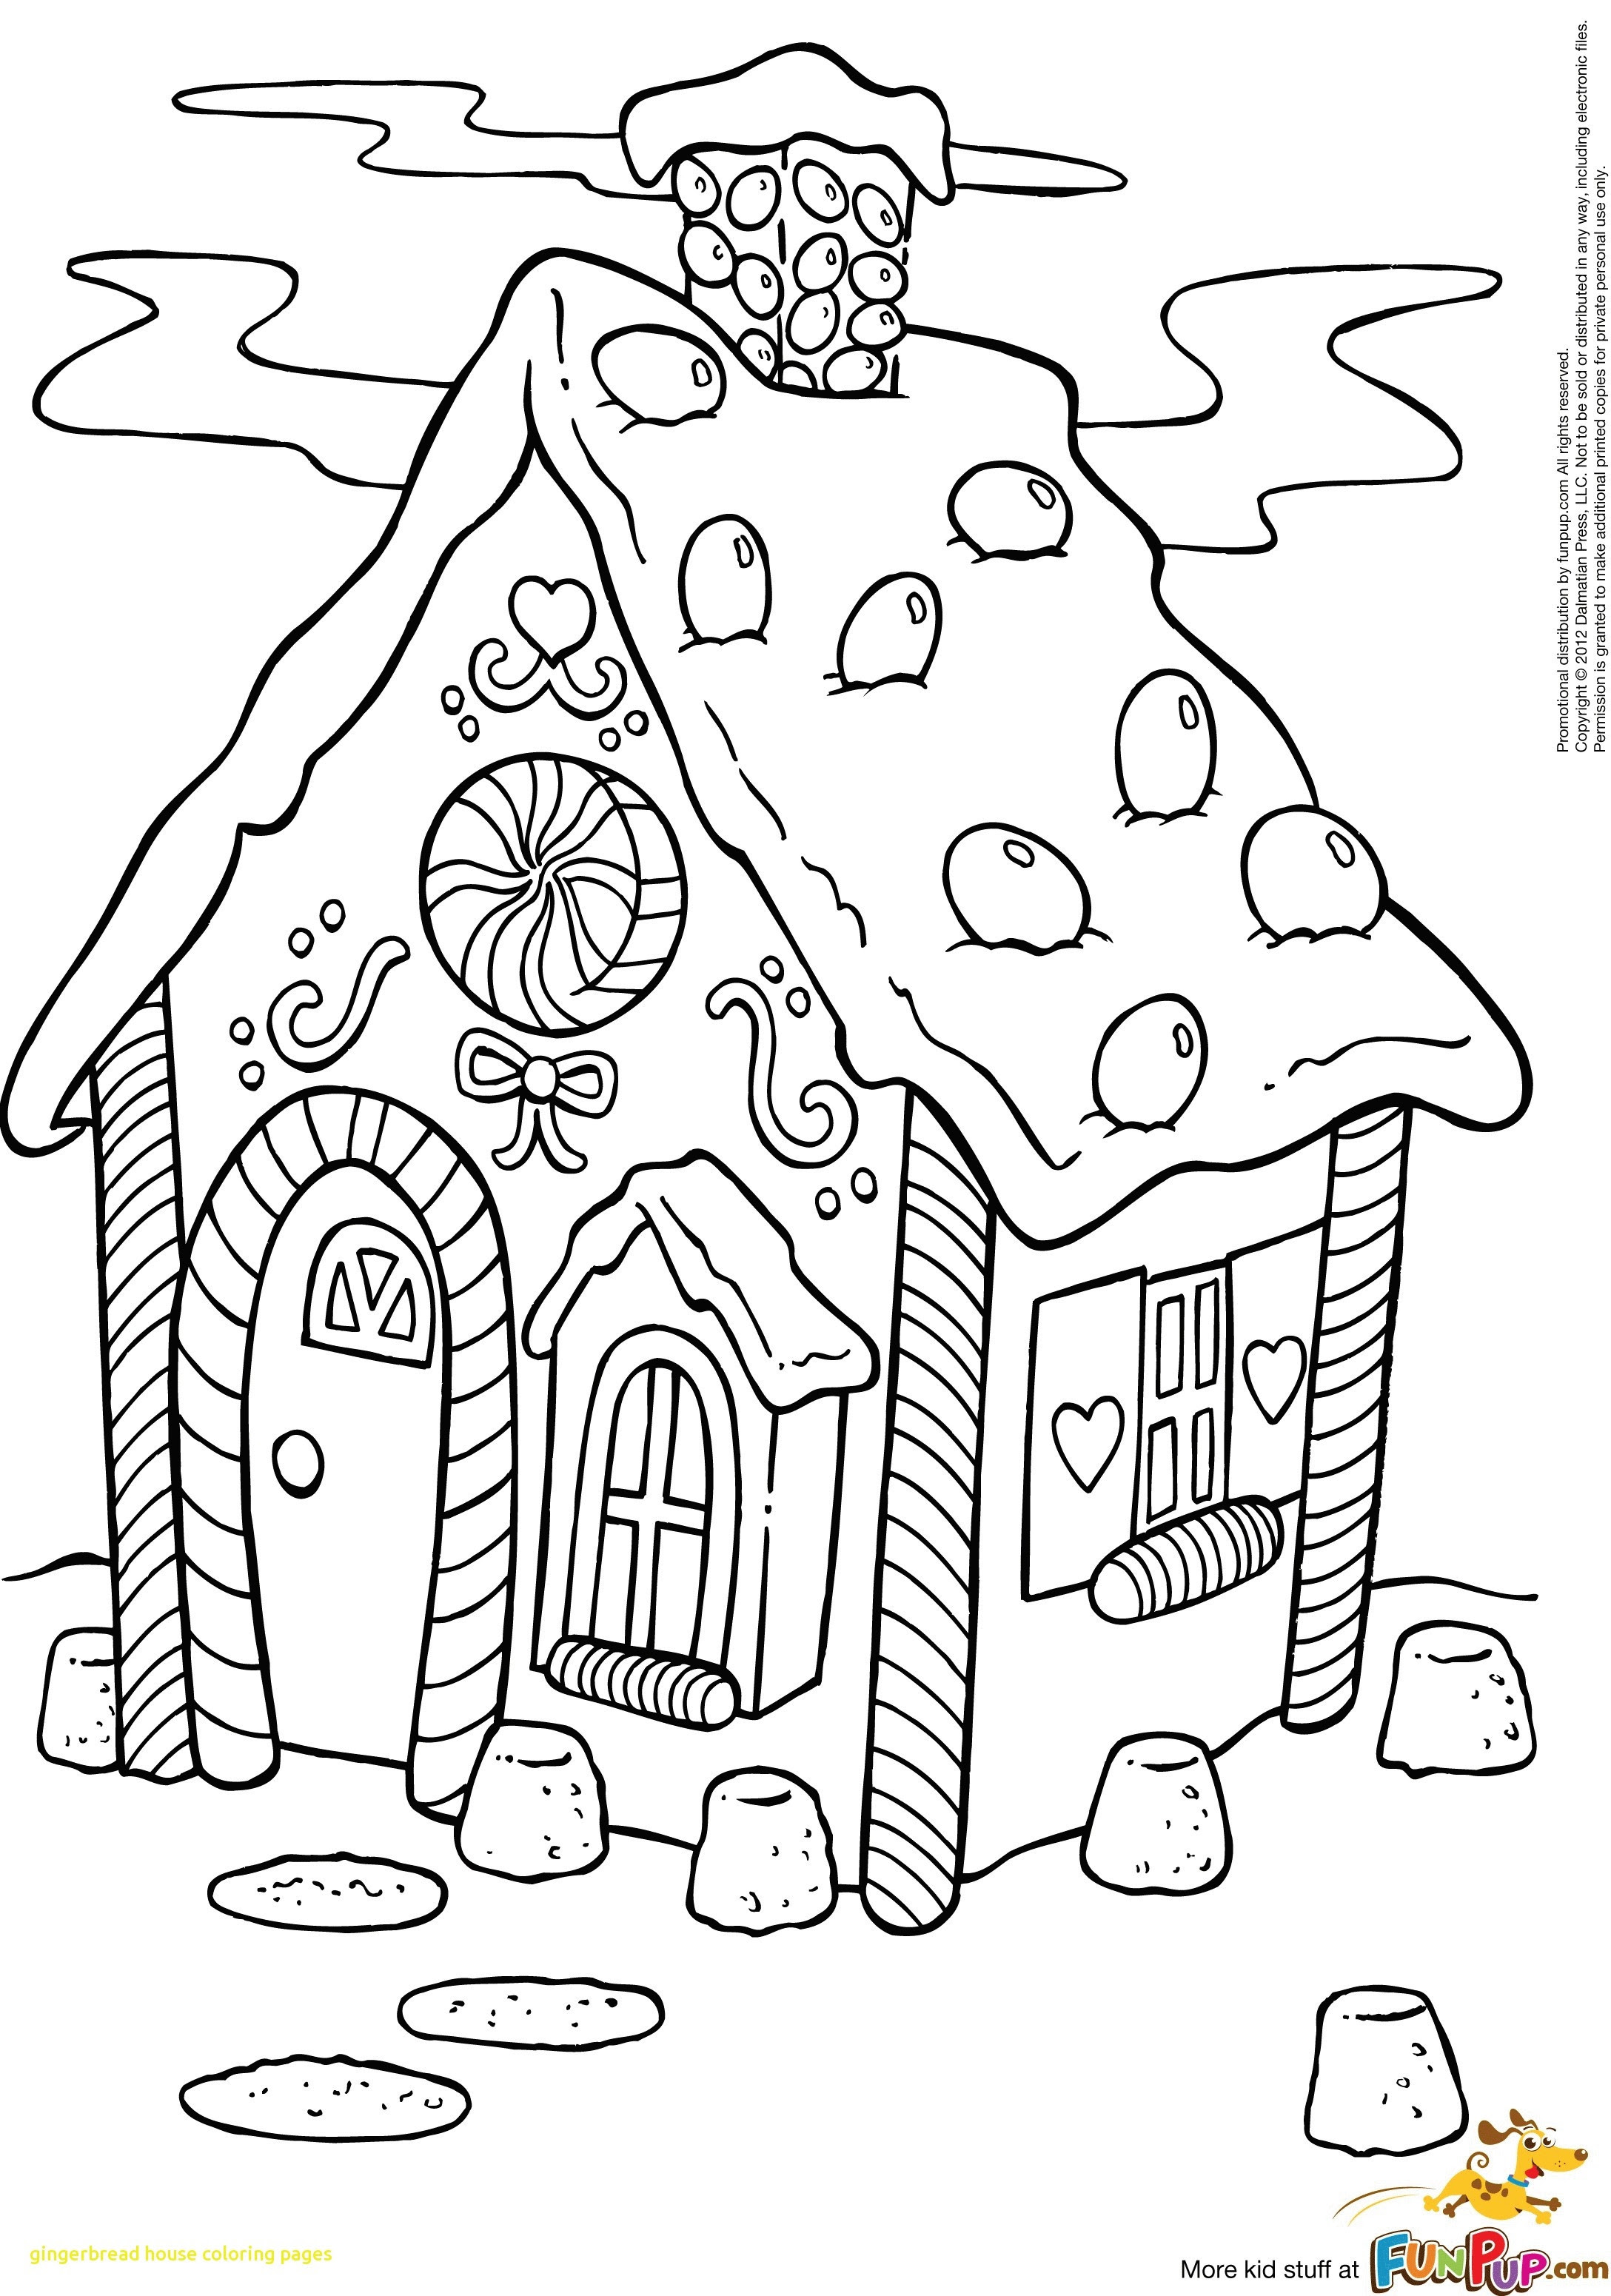 Gingerbread Man House Coloring Pages at GetColorings.com ...